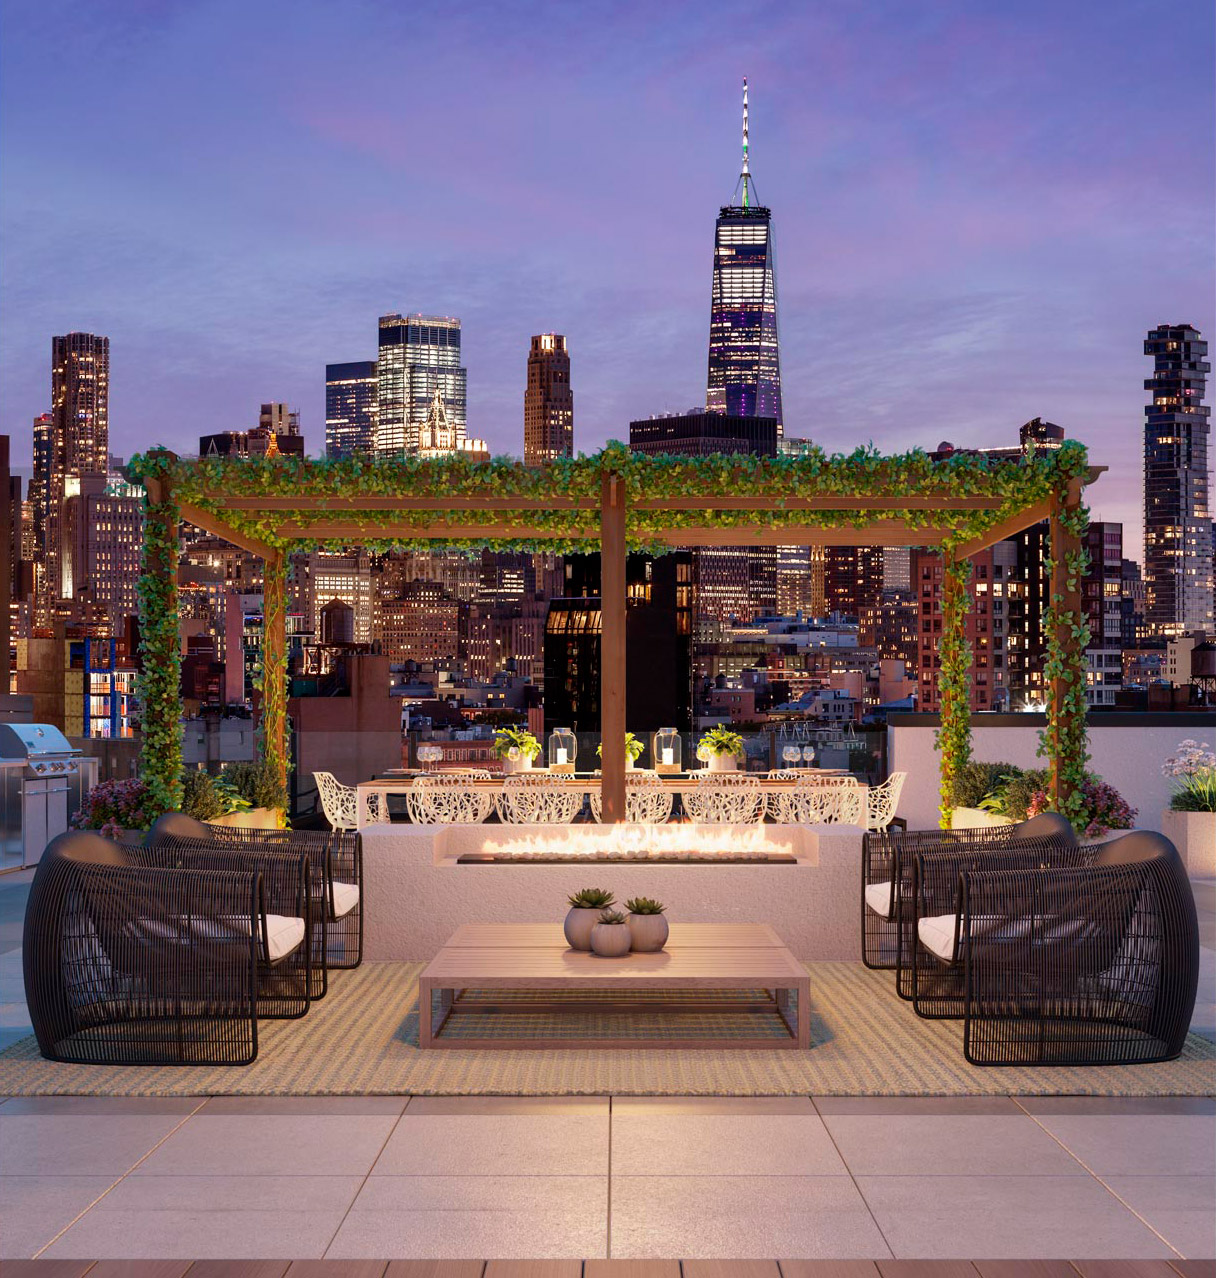 Apartments For Rent In Nyc Ny: Sione, 171 Suffolk Street, NYC